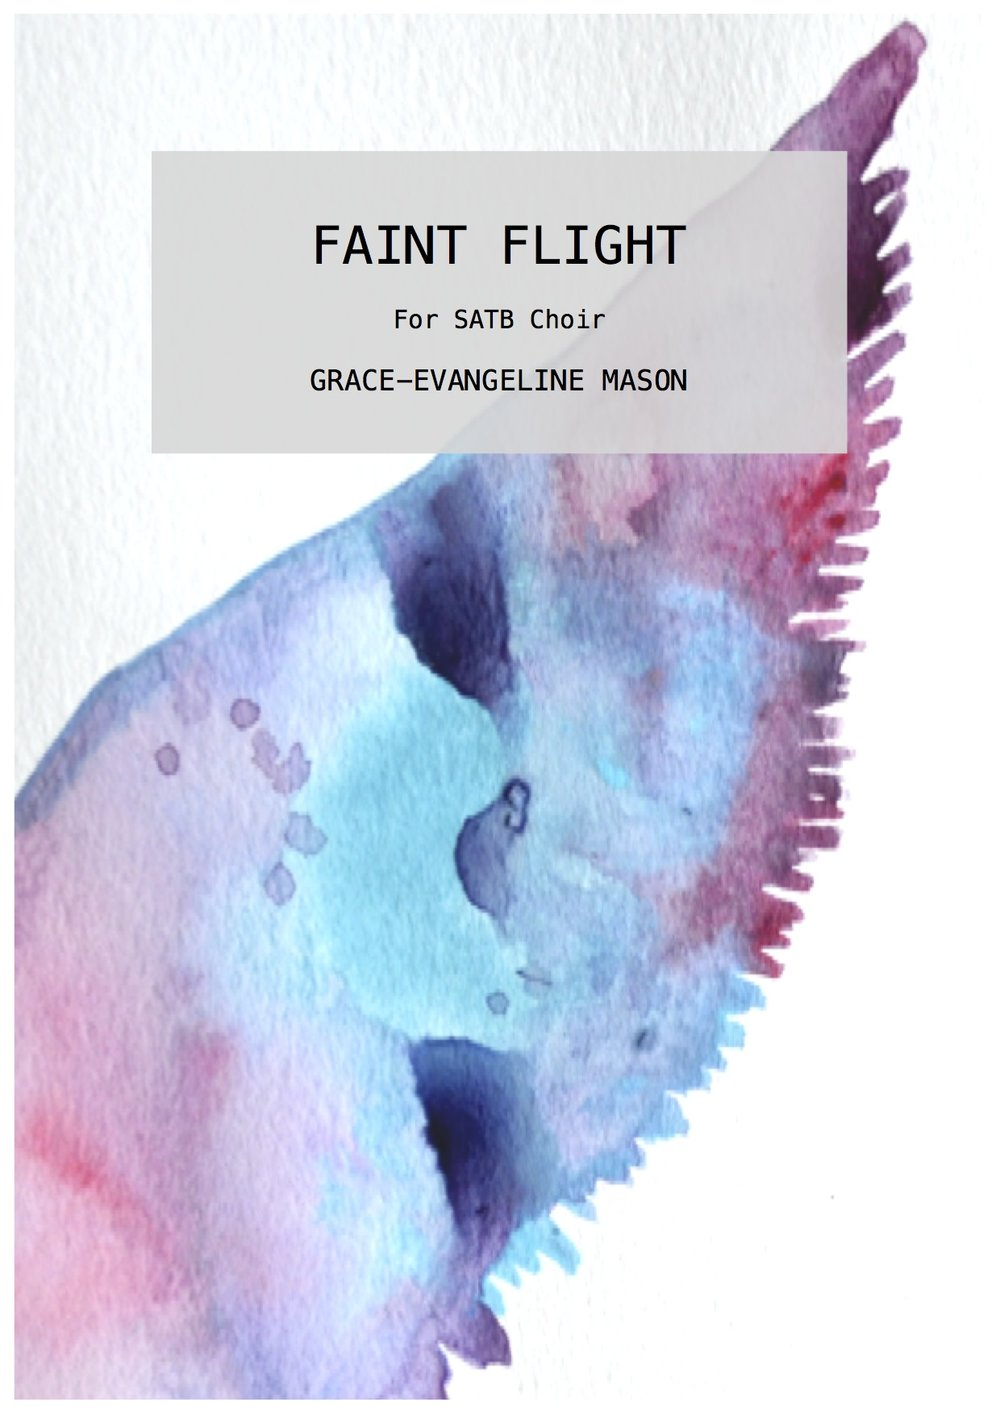 'Faint Flight' (2014) - for SATB ChoirApprox. Duration: 4'Written for the BBC Singers and conductor, Paul Brough  'Faint Flight' (2014) is centered on utilising a small selection of prose from Coventry Patmore's poem, 'Faint Yet Pursuing,' which he included in his collection of poems entitled 'The Unknown Eros' in Hastings, 1890. The work aims to create a calm, yet uplifting atmosphere.©G.E.M.2014 ©Cover Image: 'Flight' Painting by Grace-Evangeline Mason 2014